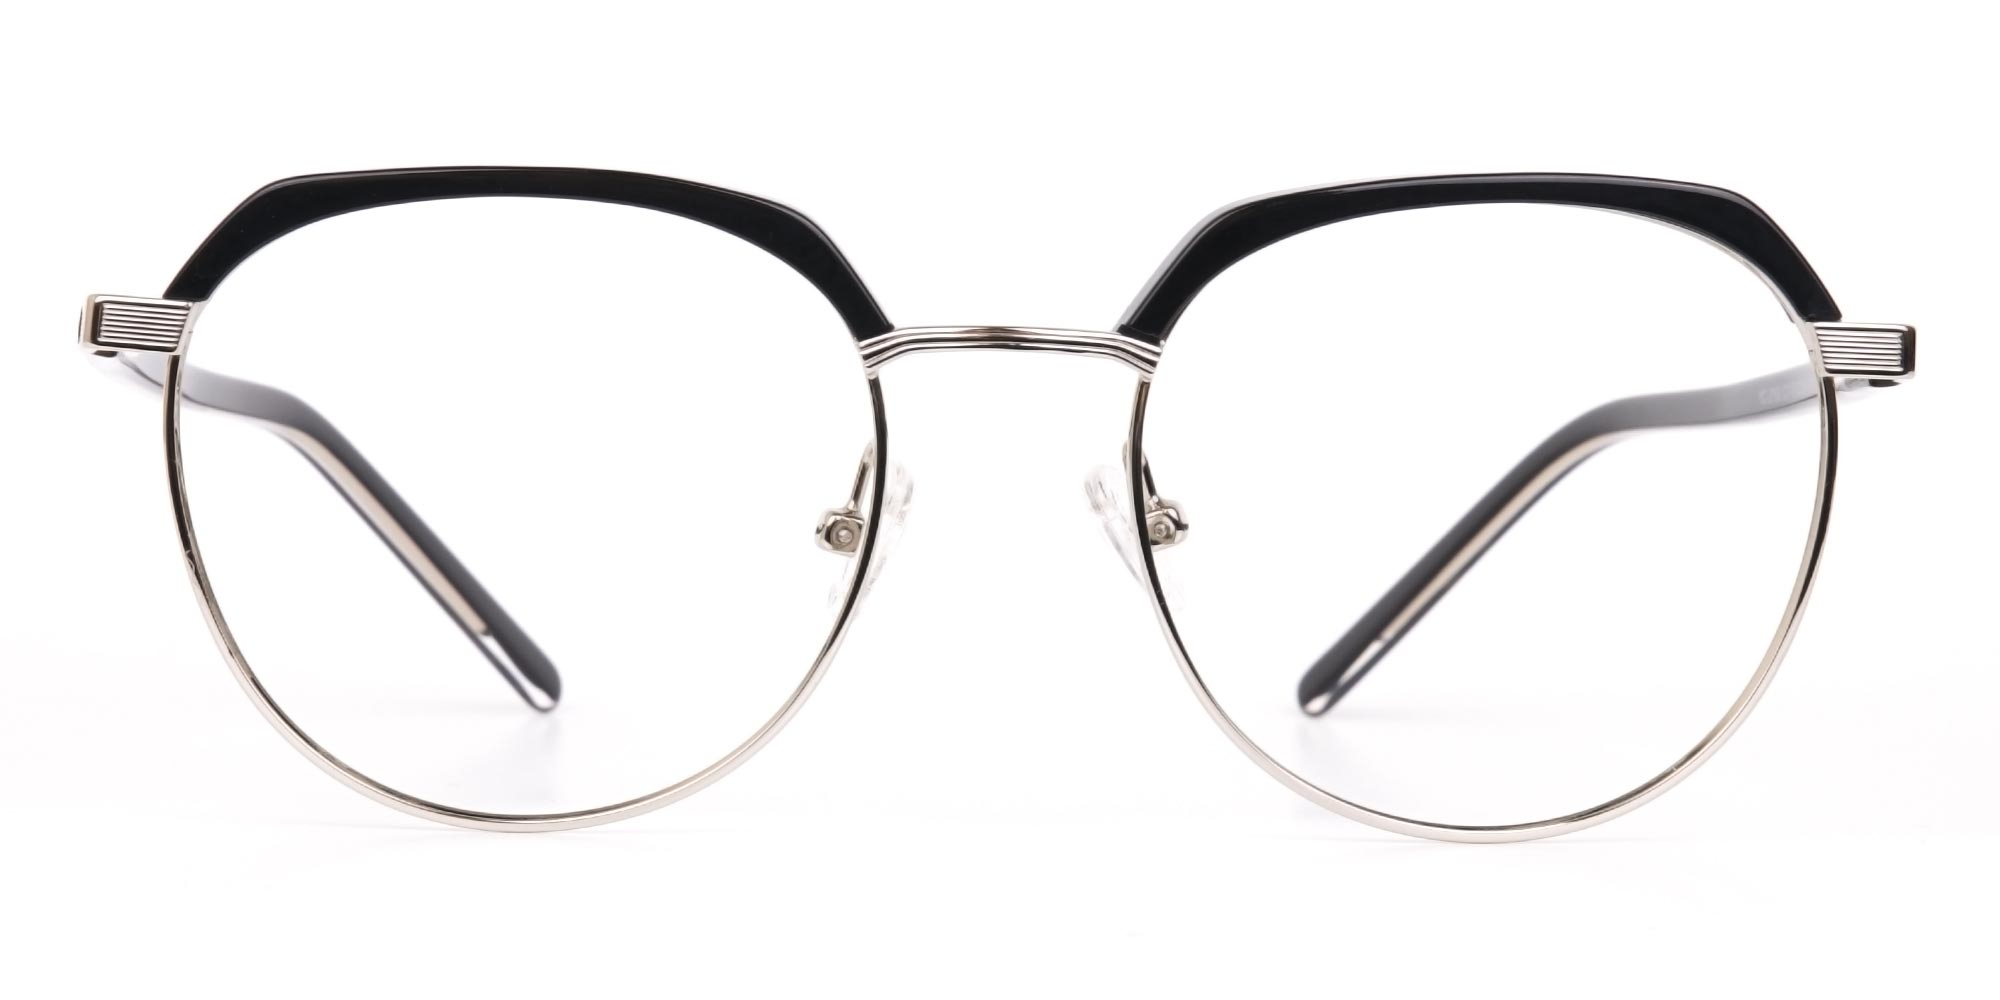 Glasses To Look Younger A List Of Styles And Bonus Tips Image discovered by 노을 ☾. glasses to look younger a list of